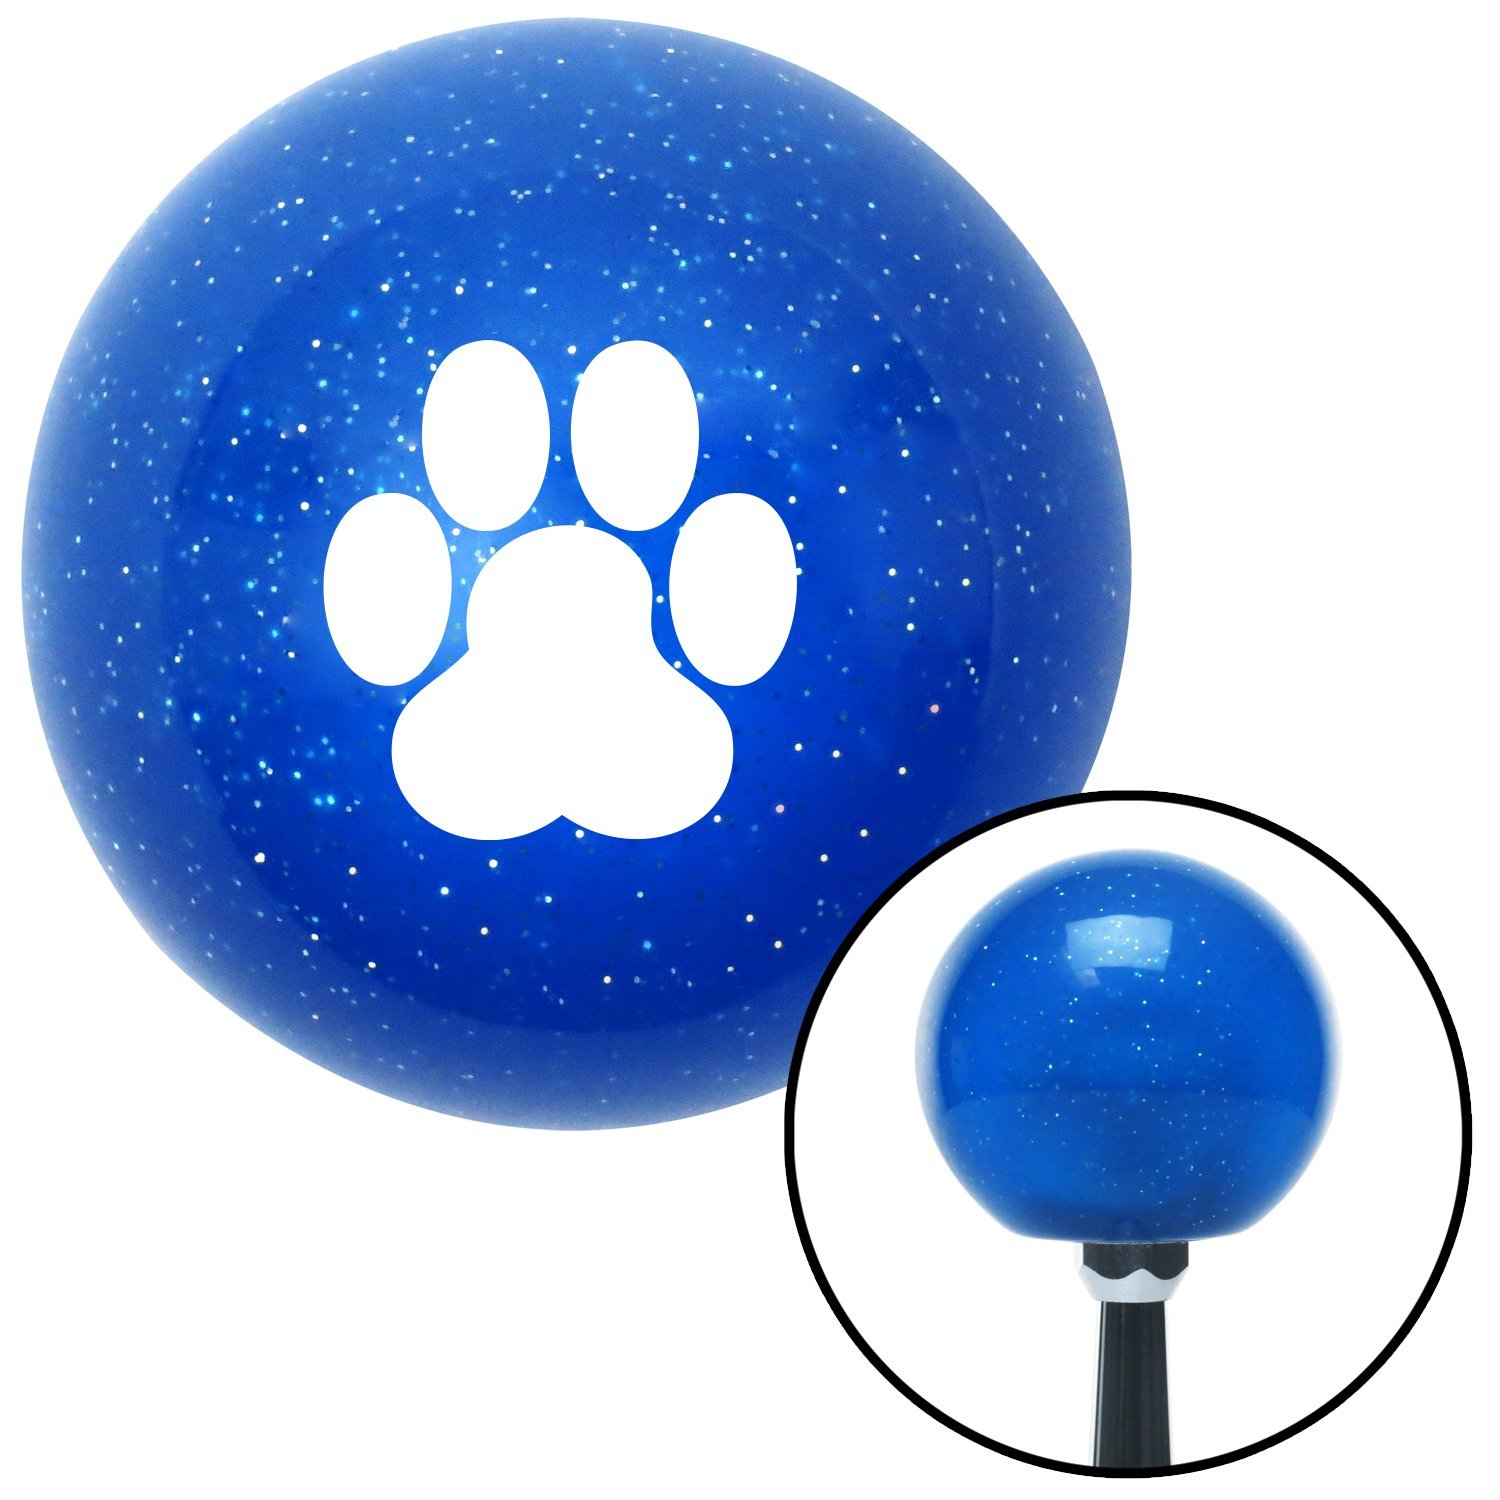 White Pawprint American Shifter 26903 Blue Metal Flake Shift Knob